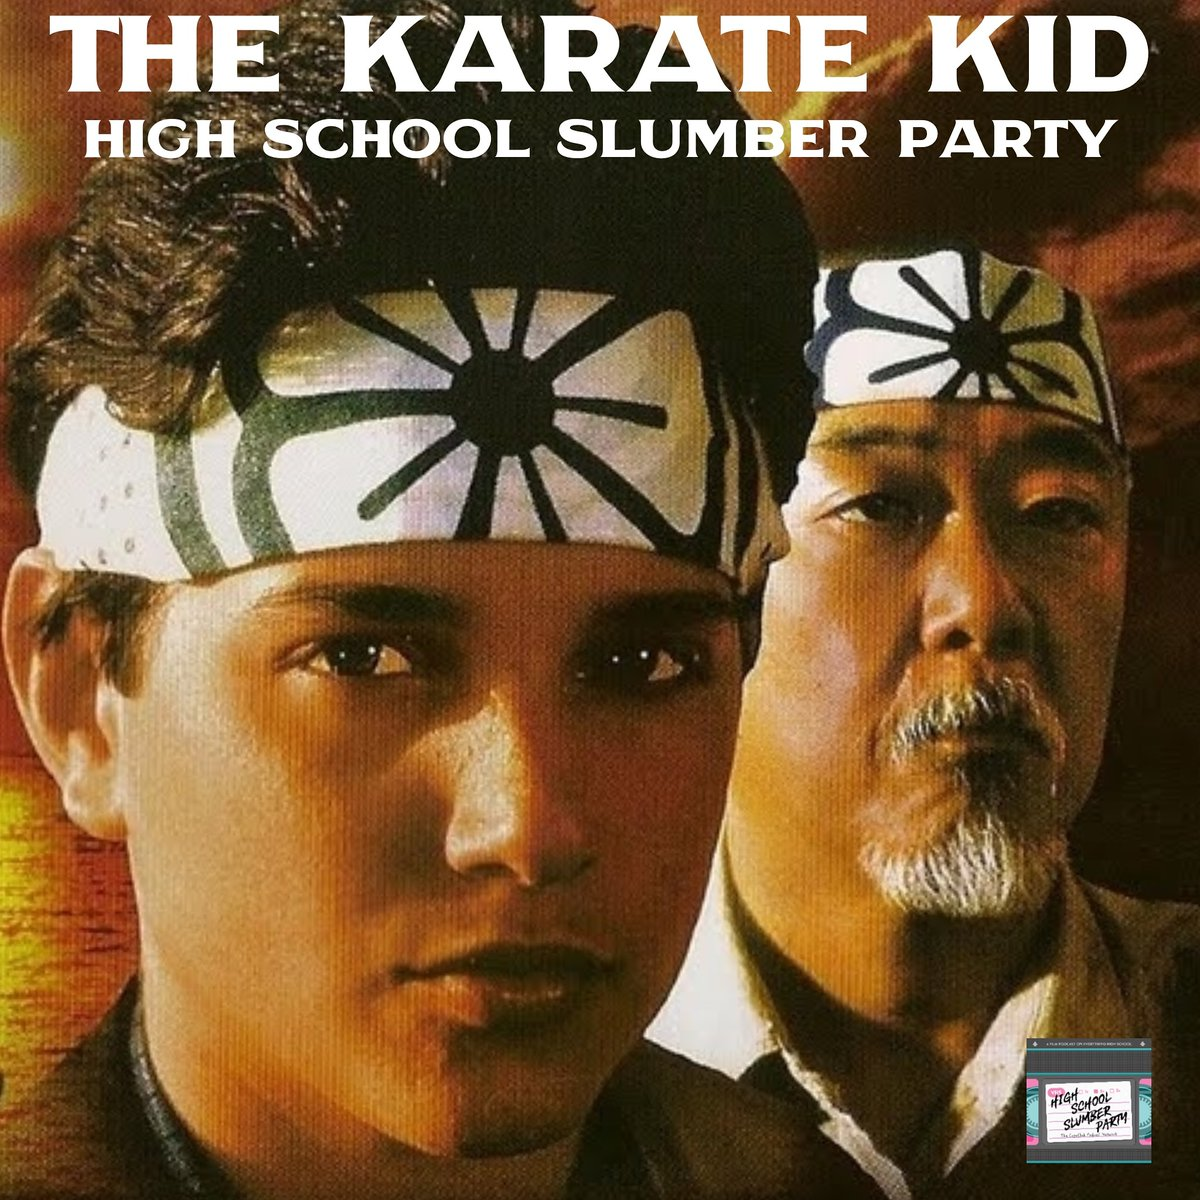 Have you listened to our episode on The Karate Kid yet?  https://www.cageclub.me/karate-kid/  #moviepodcast #popculture #filmpodcast #teenmovies #highschoolmovies  #podcasting @cageclubpod  #karatekid @cobrakaiseries #patmorita #ralphmacchio #elisabethshue @the_mikestirpic.twitter.com/UmrRGDd0p3